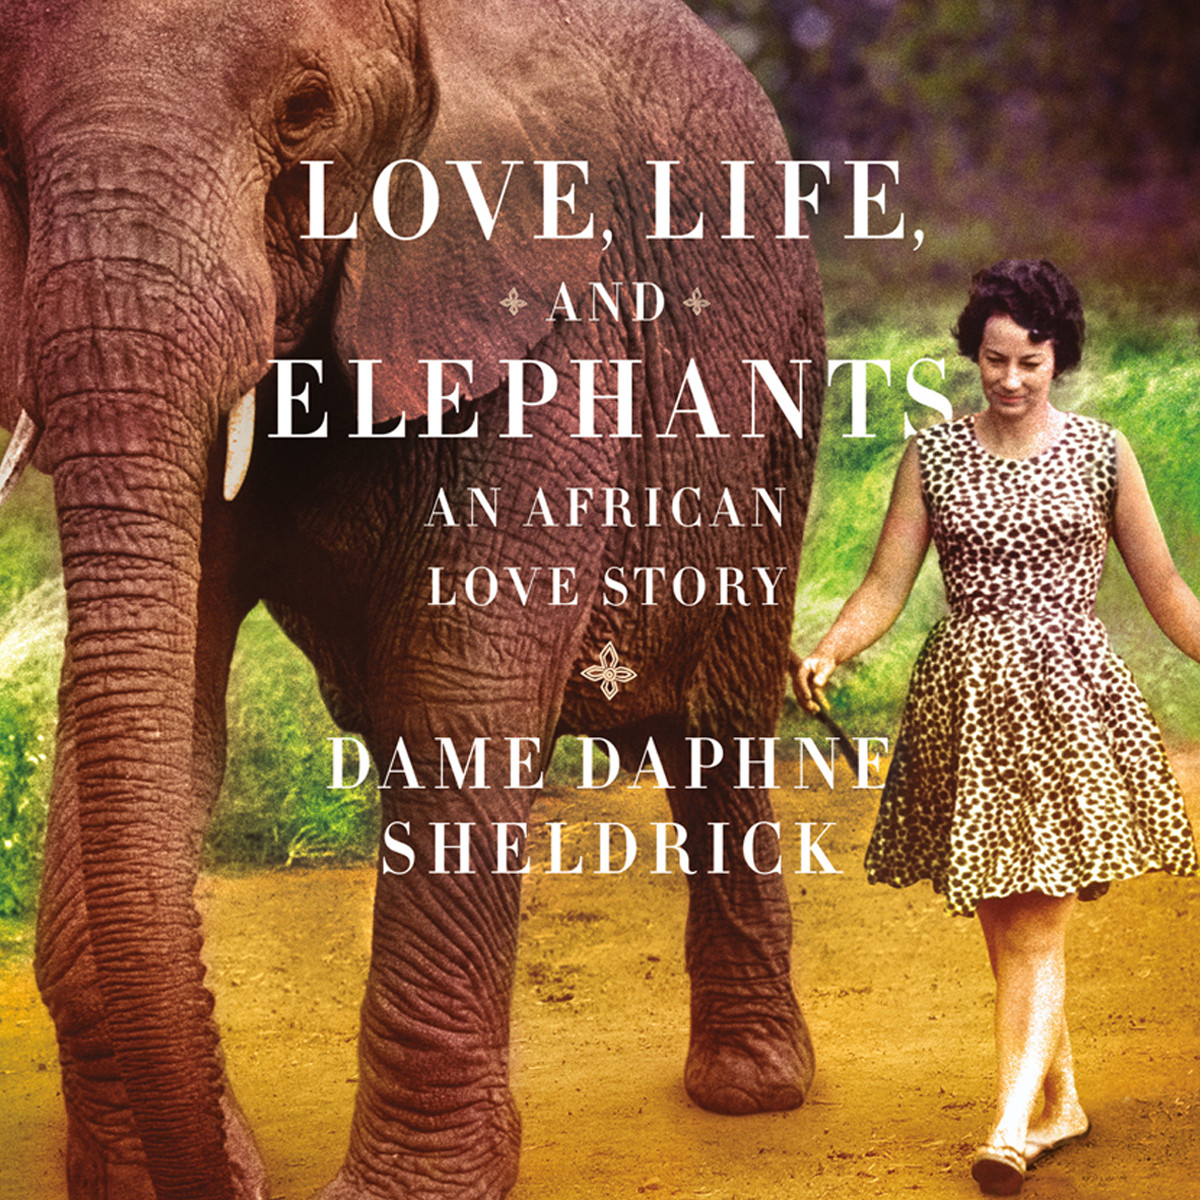 Printable Love, Life, and Elephants: An African Love Story Audiobook Cover Art